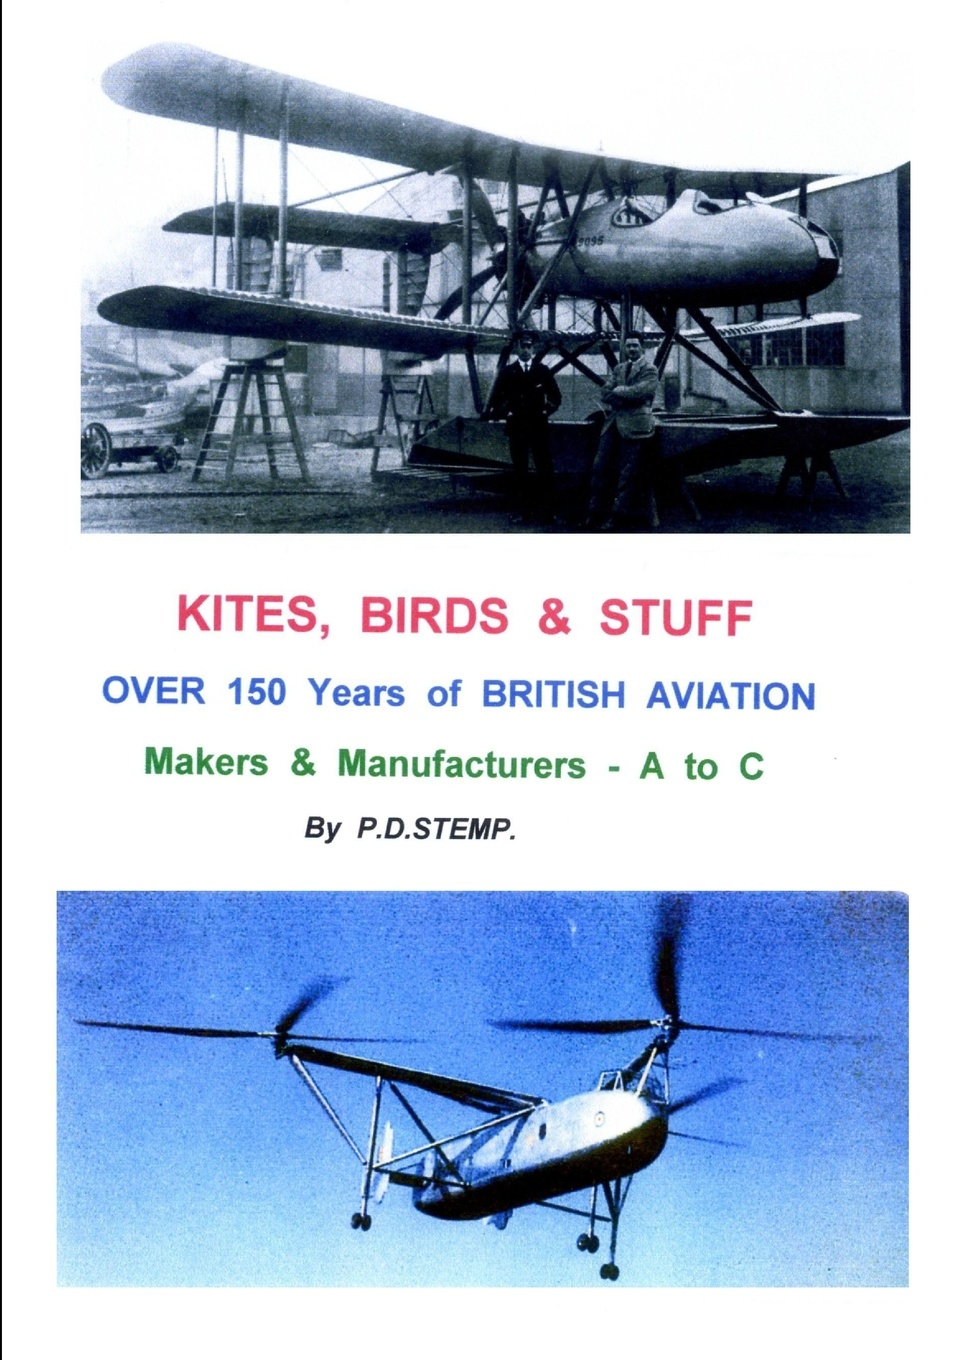 P.D. Stemp KITES, BIRDS & STUFF - Over 150 Years of BRITISH Aviation - Makers & Manufacturers - Volume 1 - A to C peter herman c a short history of early modern england british literature in context